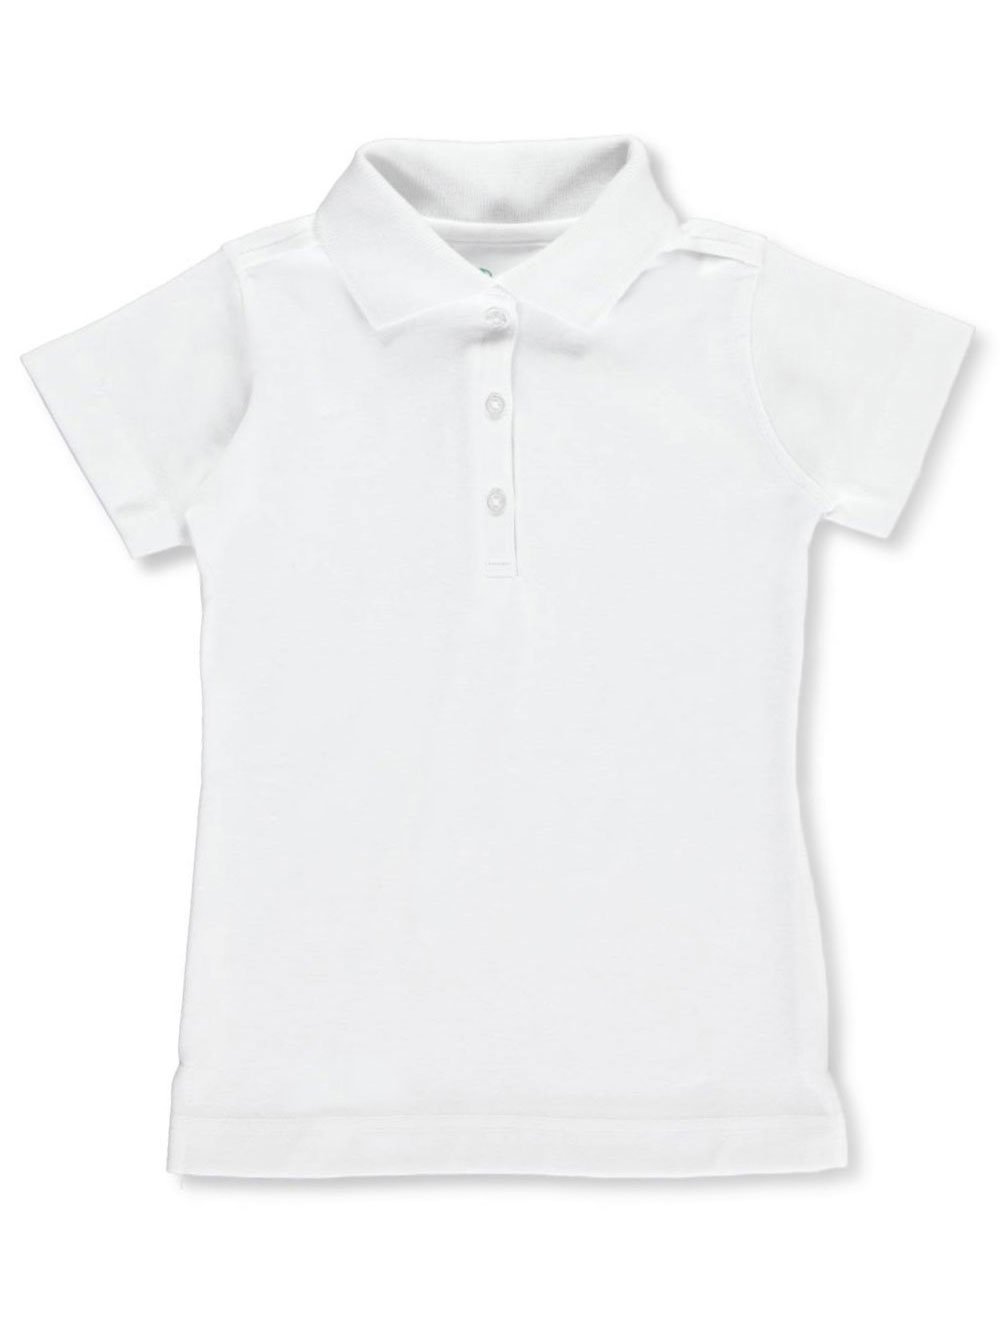 Size 5 Knit Polos for Girls